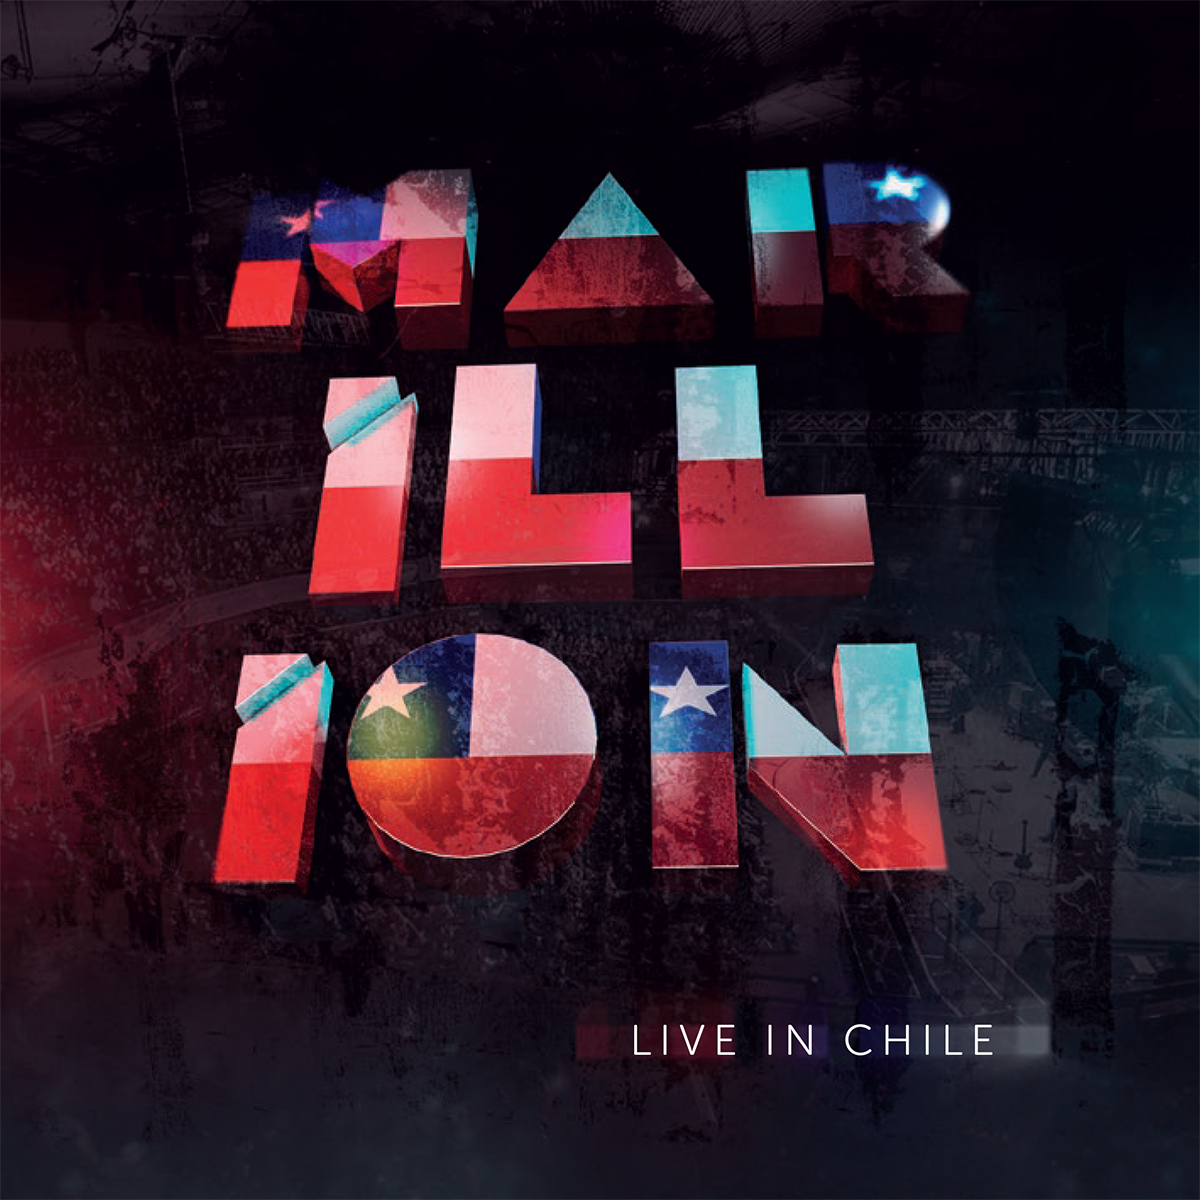 LIVE IN CHILE 320 KBPS ALBUM DOWNLOAD